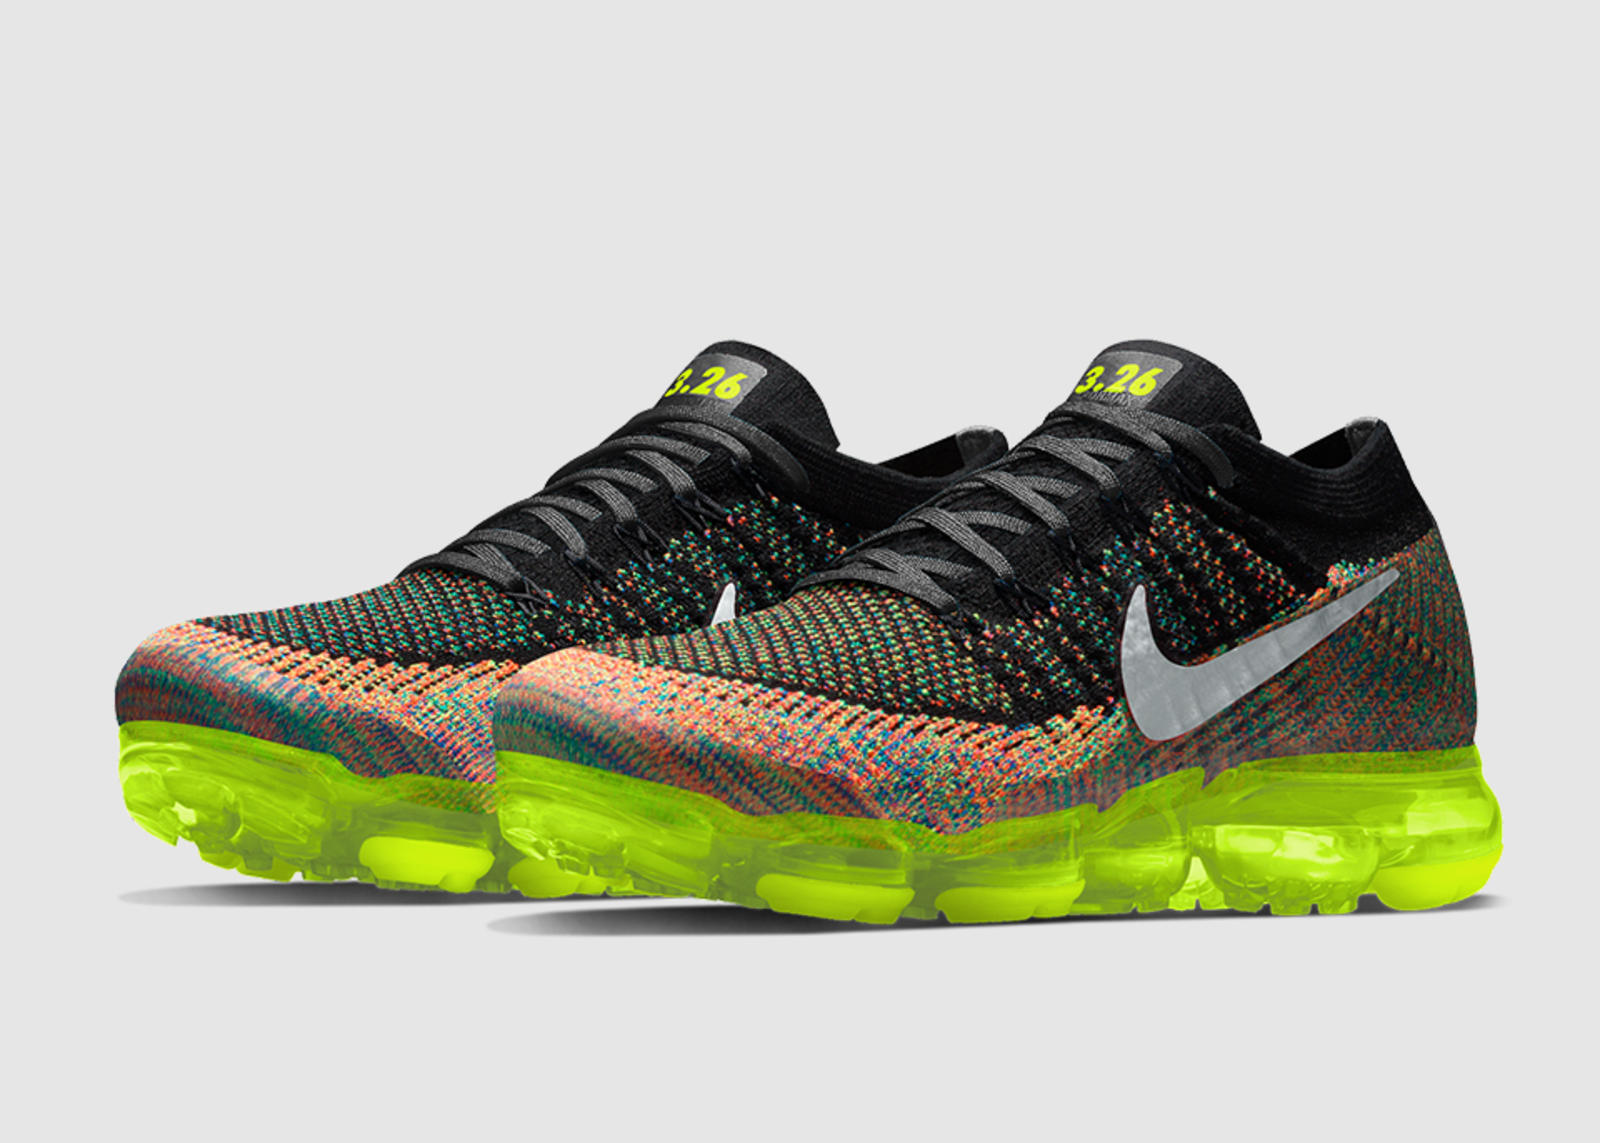 dcce6357dd Nike Air VaporMax iD Celebrates Past, Present and Future of Air 14